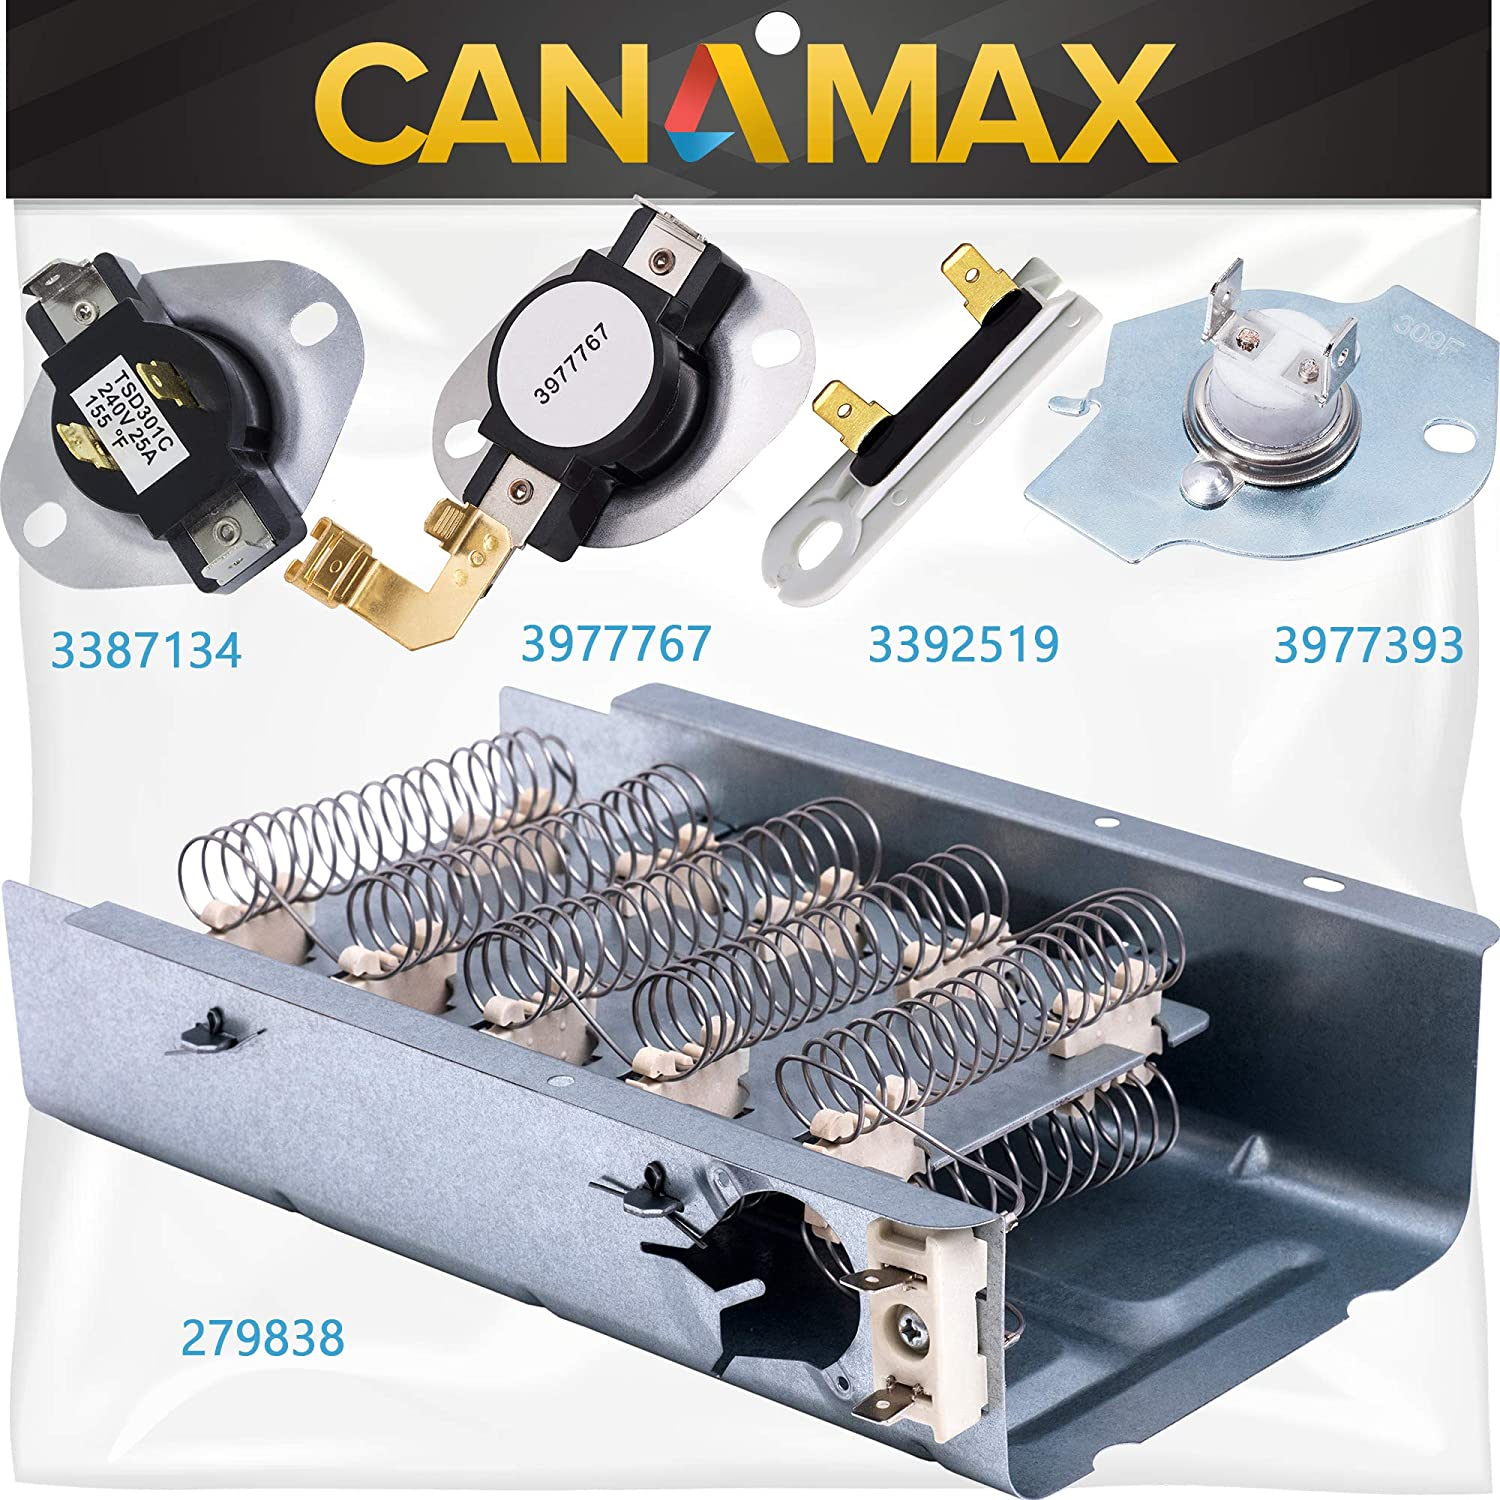 279838 Dryer Heating Element 3392519 3977393 Thermal Fuse 3387134 3977767 Thermostat Dryer Repair Kit Premium Replacement by Canamax - Compatible with Whirlpool Kenmore Samsung Dryers